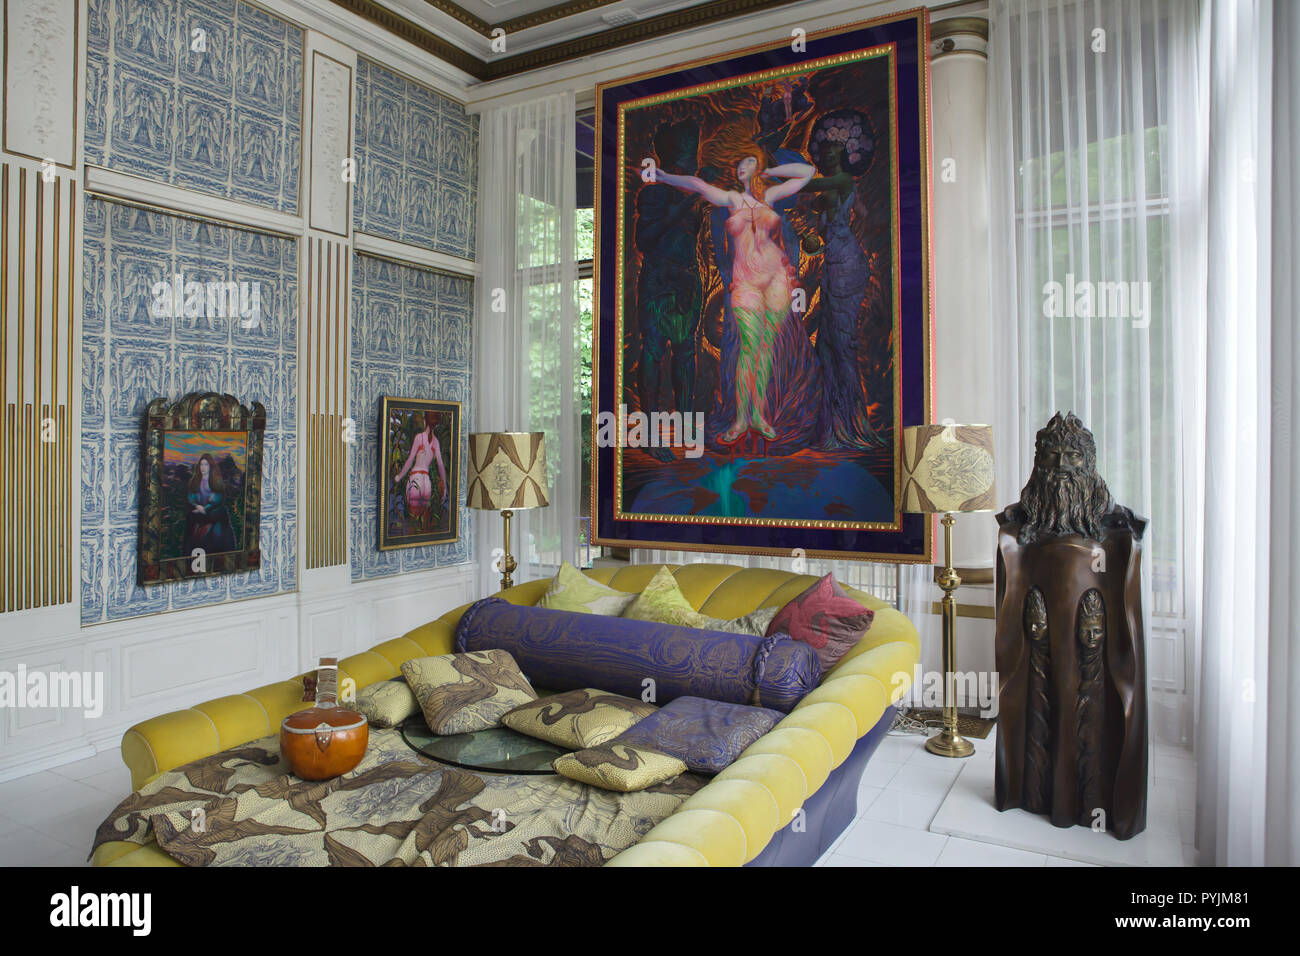 Paintings by Austrian artist Ernst Fuchs on display in the Blue Parlor in the Ernst Fuchs Museum in Vienna, Austria. The museum is housed in the former Wagner Villa I designed by Austrian modernist architect Otto Wagner and built in 1886-1888 in Hütteldorf district. The building was acquired and rebuilt by Ernst Fuchs in the 1970s. Large painting 'The Dressing of Esther' (1988-1989) is hung over the Yellow Bed also designed by Ernst Fuchs. - Stock Image